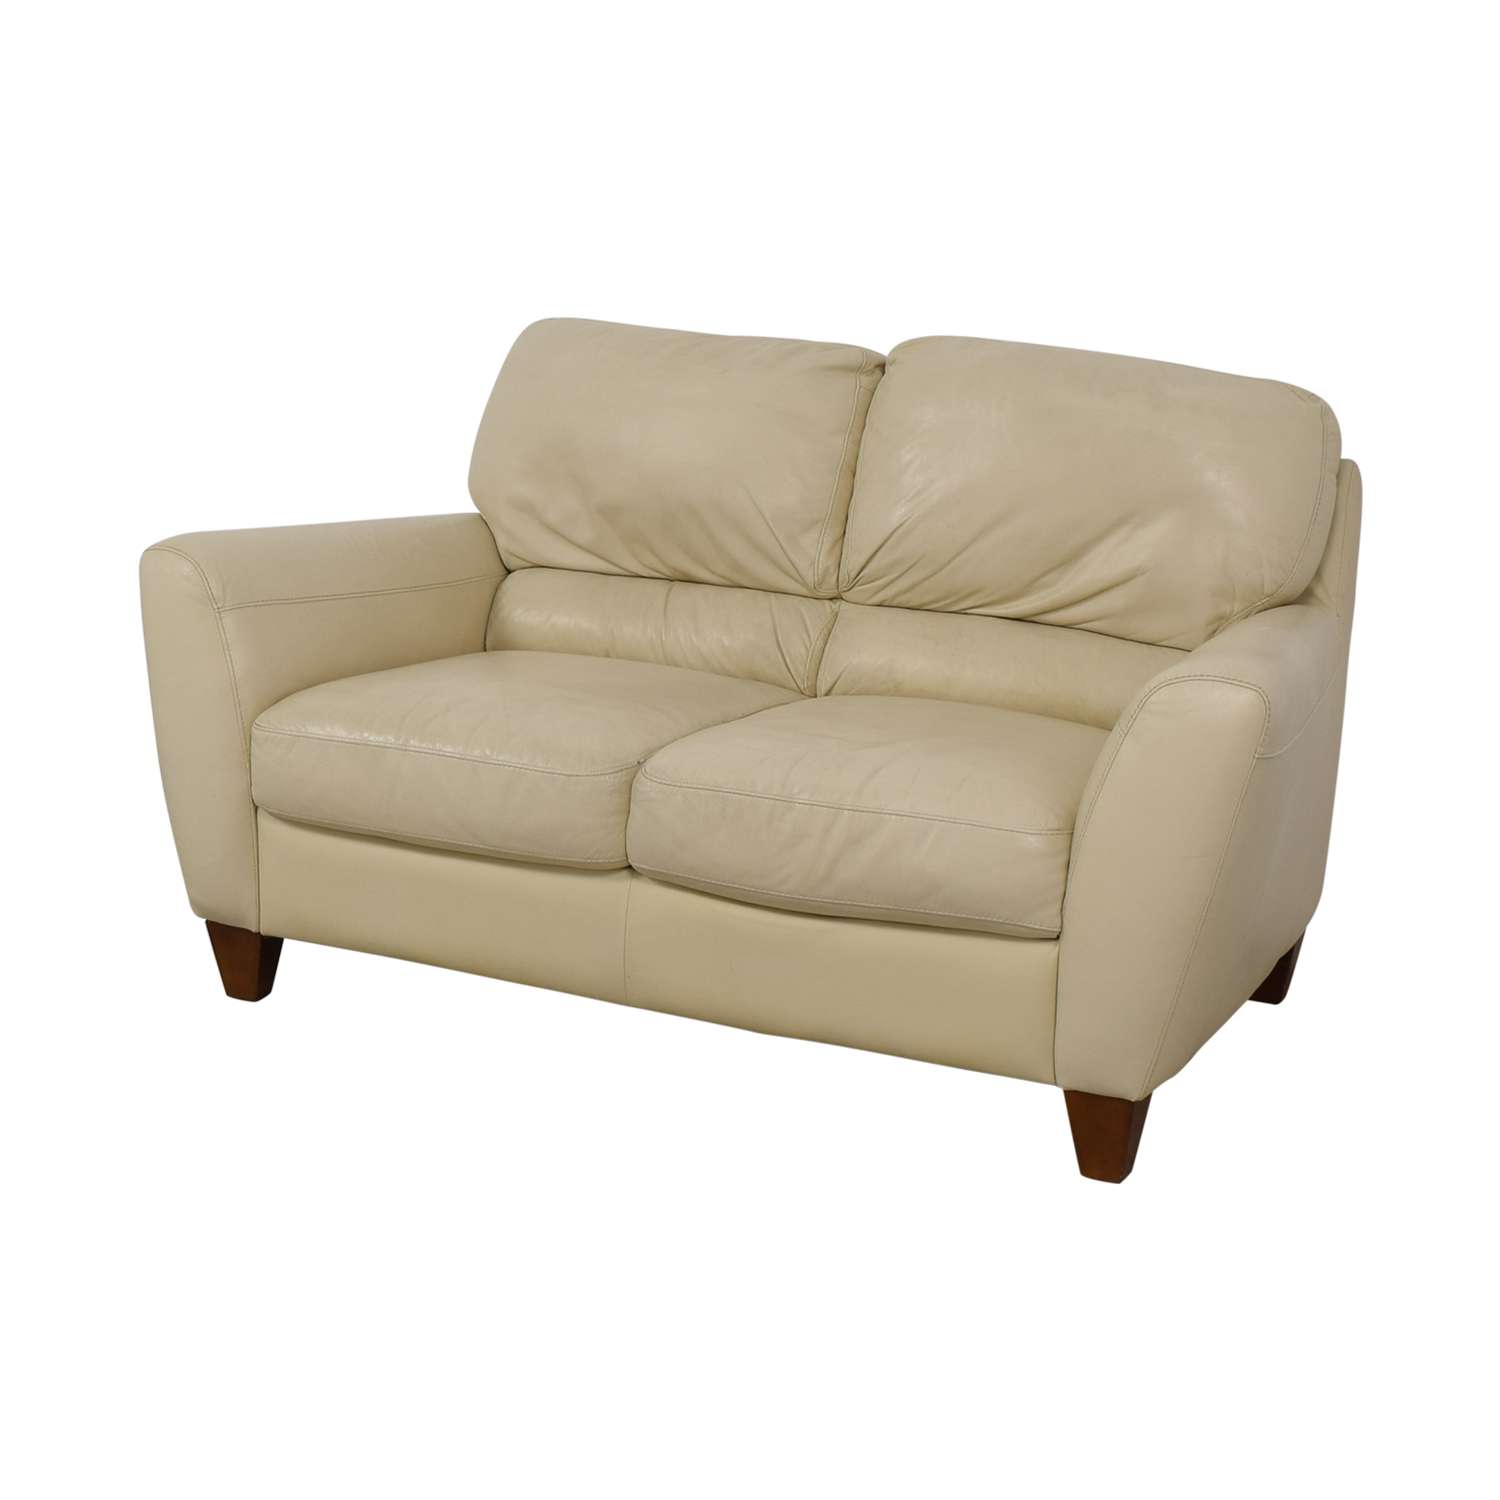 Macy's Macy's White Two-Cushion Loveseat for sale